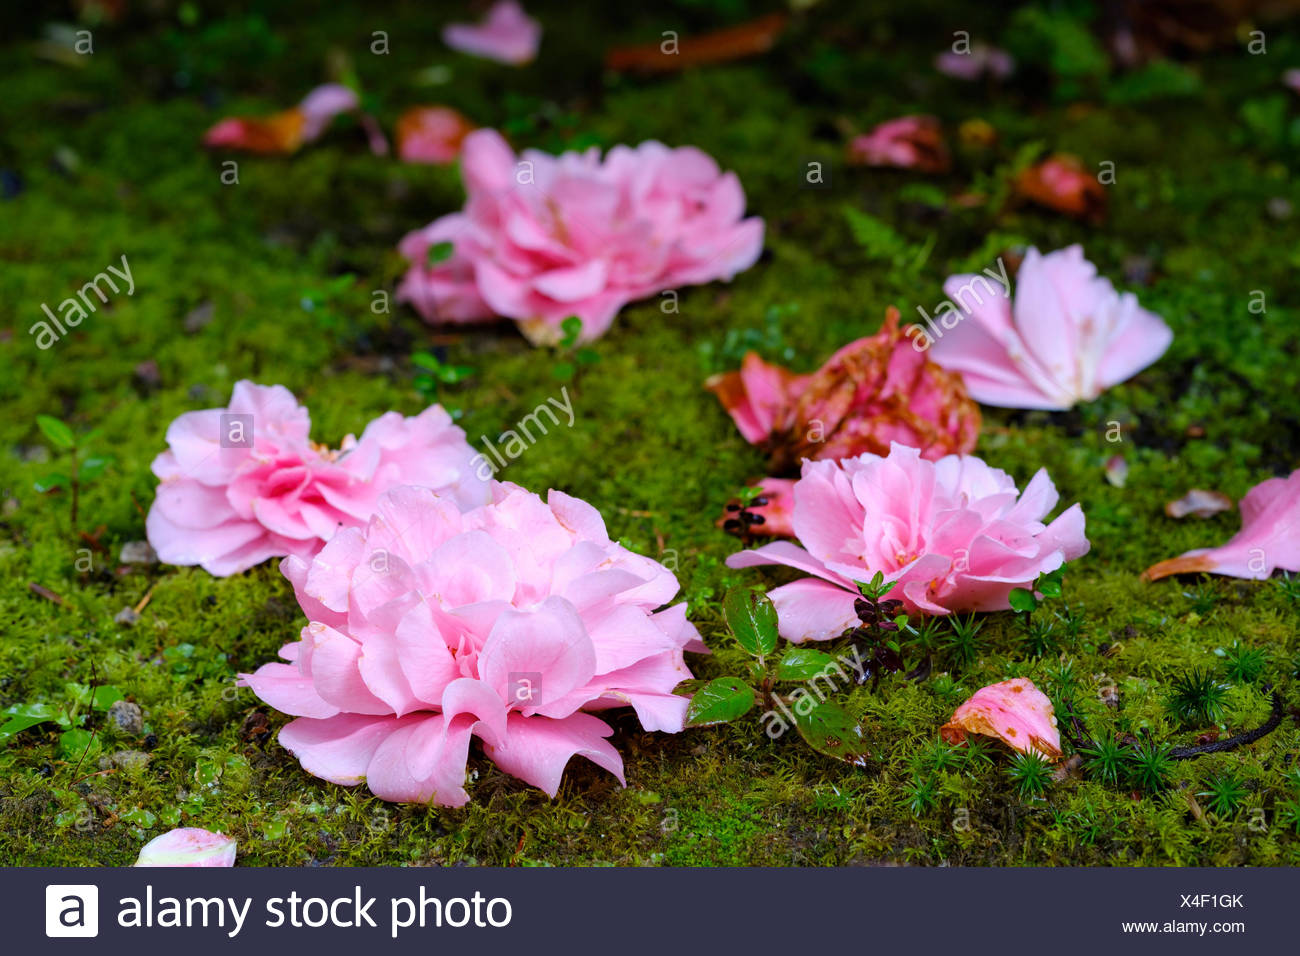 Faded flowers of Camellia (Camellia) are lying on the ground, Trewidden Garden, near Penzance, Cornwall, England, Great Britain - Stock Image